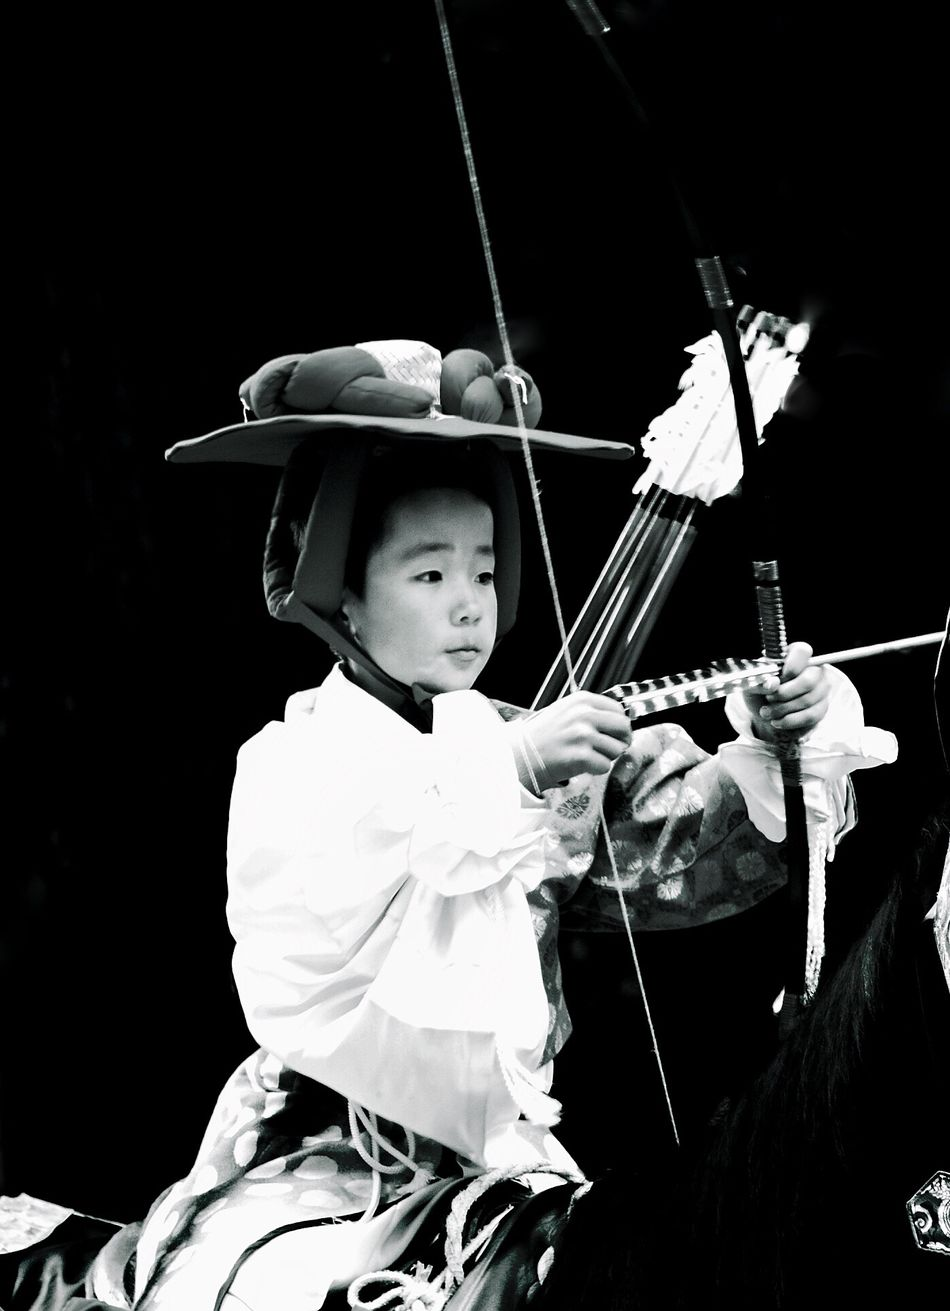 Black & White Japanese Culture B&w Photography Black And White Photography EyeEm Best Shots - Black + White Japan Photography Japanese  EyeEm Japan Japanese Style B&W Portrait Monochrome B&w Street Photography B&W Street Photograpghy Japan Portrait Showcase: December Black And White Blackandwhite Boy Nara Yabusame Archery Japanese Archery Ultimate Japan